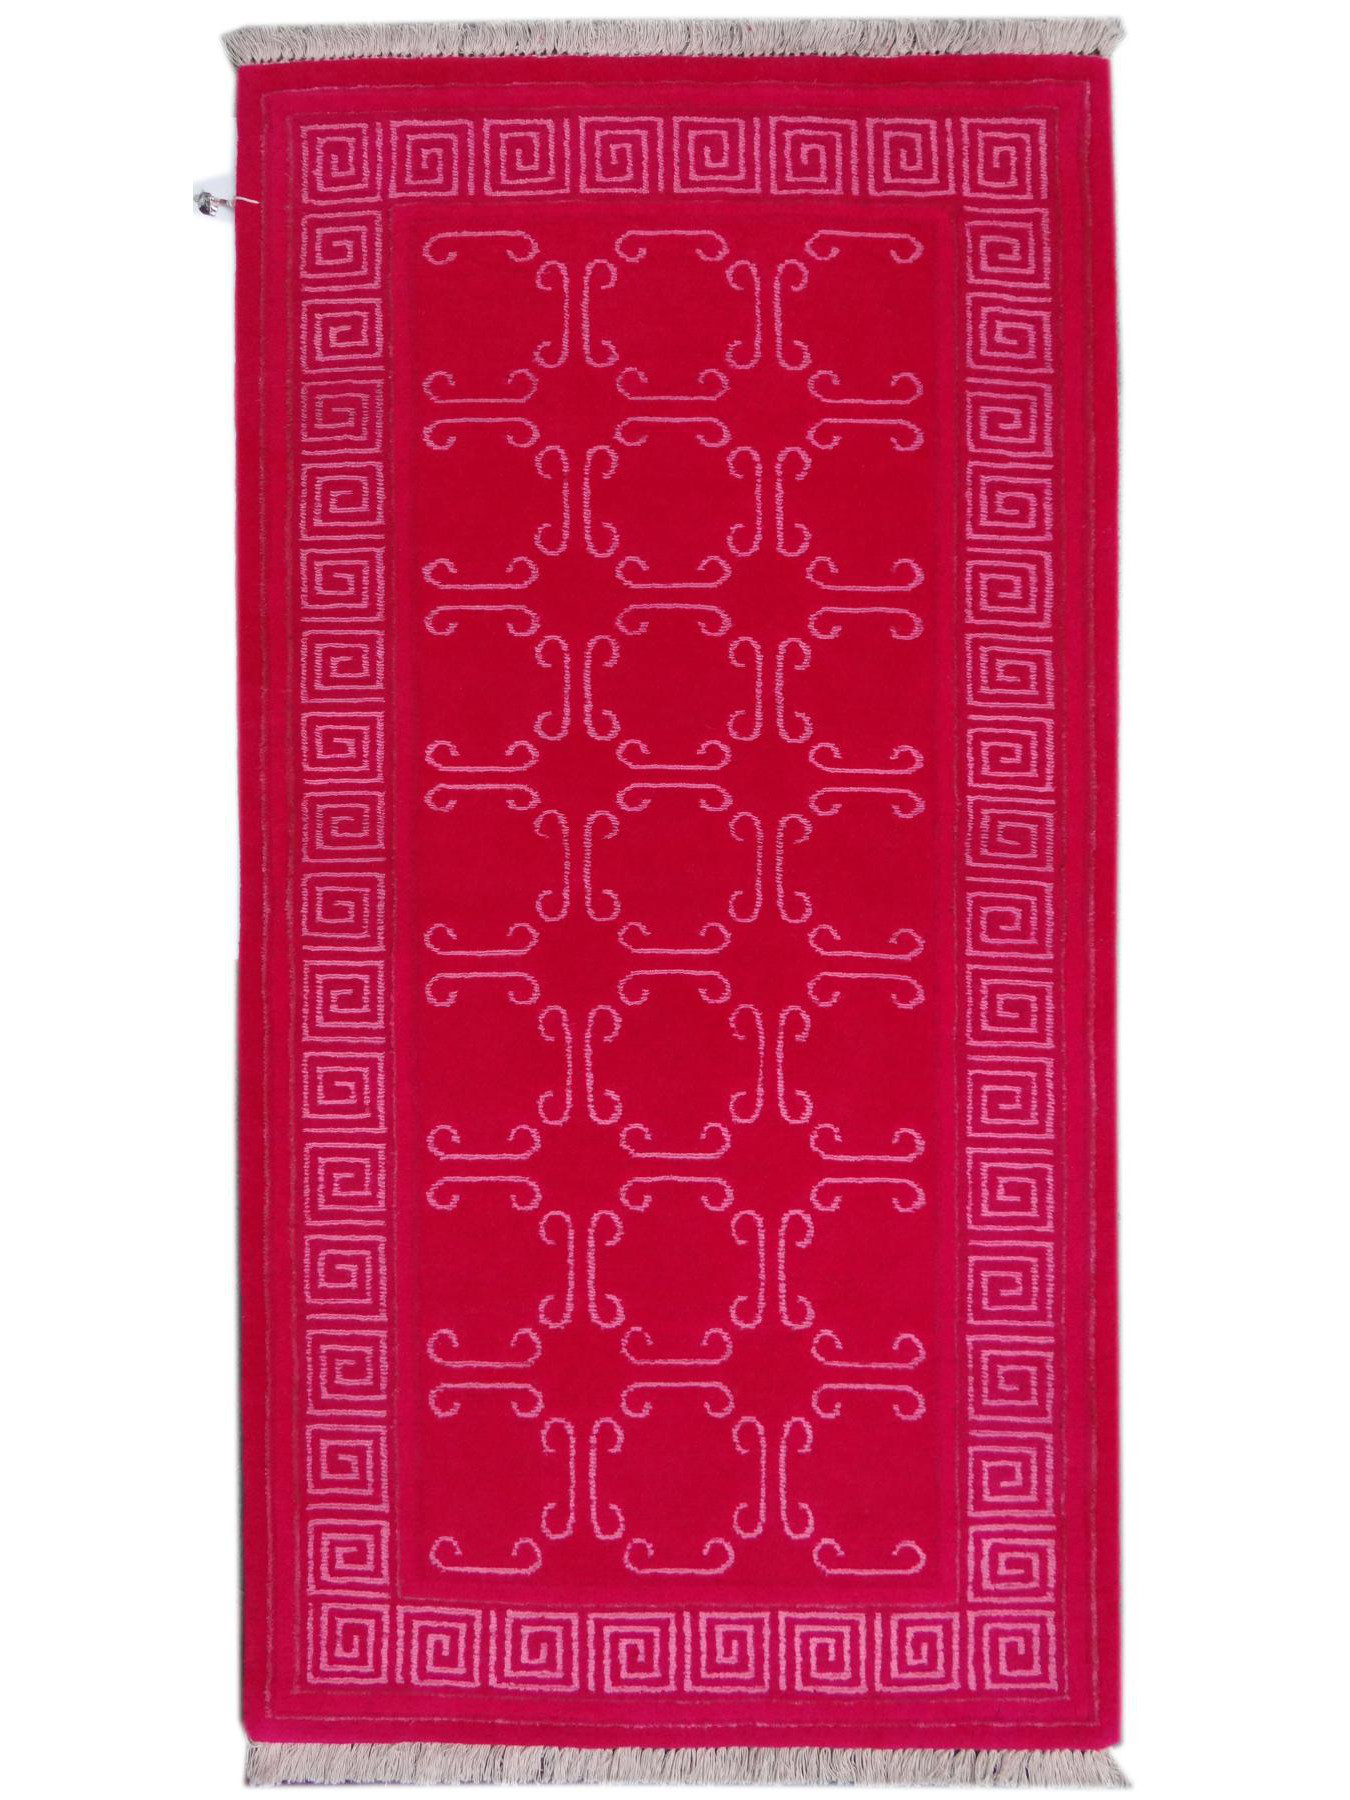 Luxury carpets - GRECO - S5525 PINK